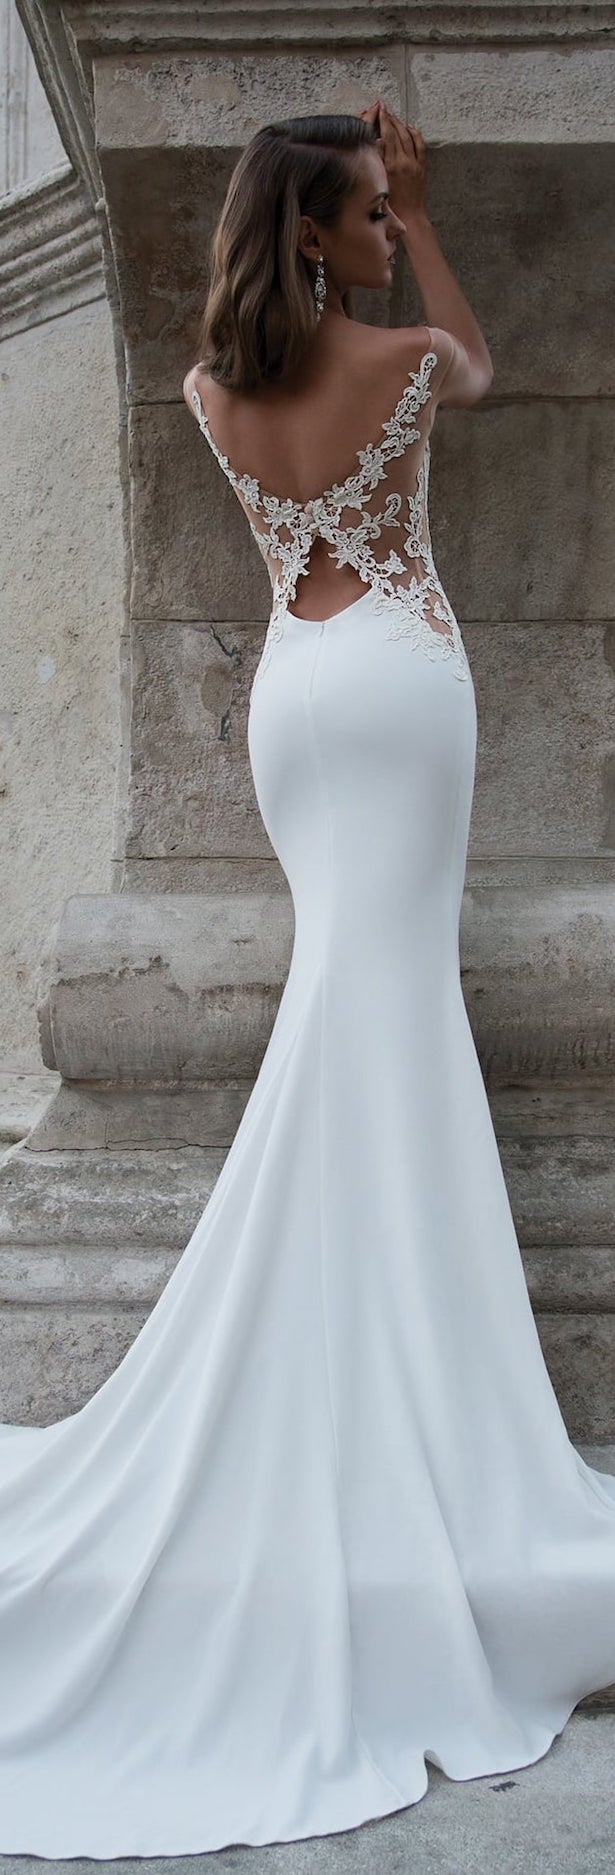 Dominiss Wedding Dress 2017